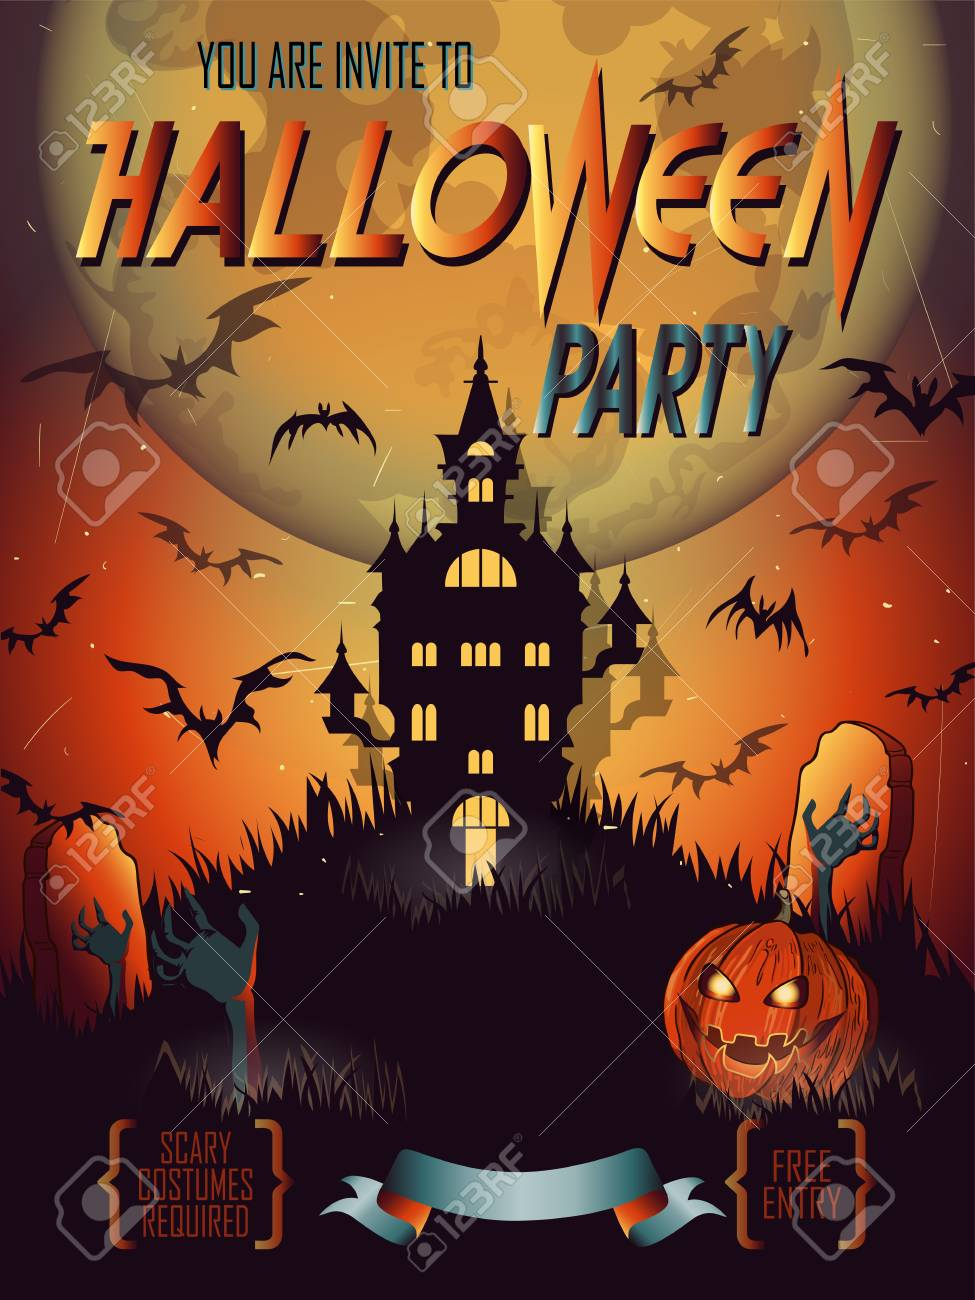 Halloween Party Invitation With Haunted House Bat Moon And Other Items On Halloween